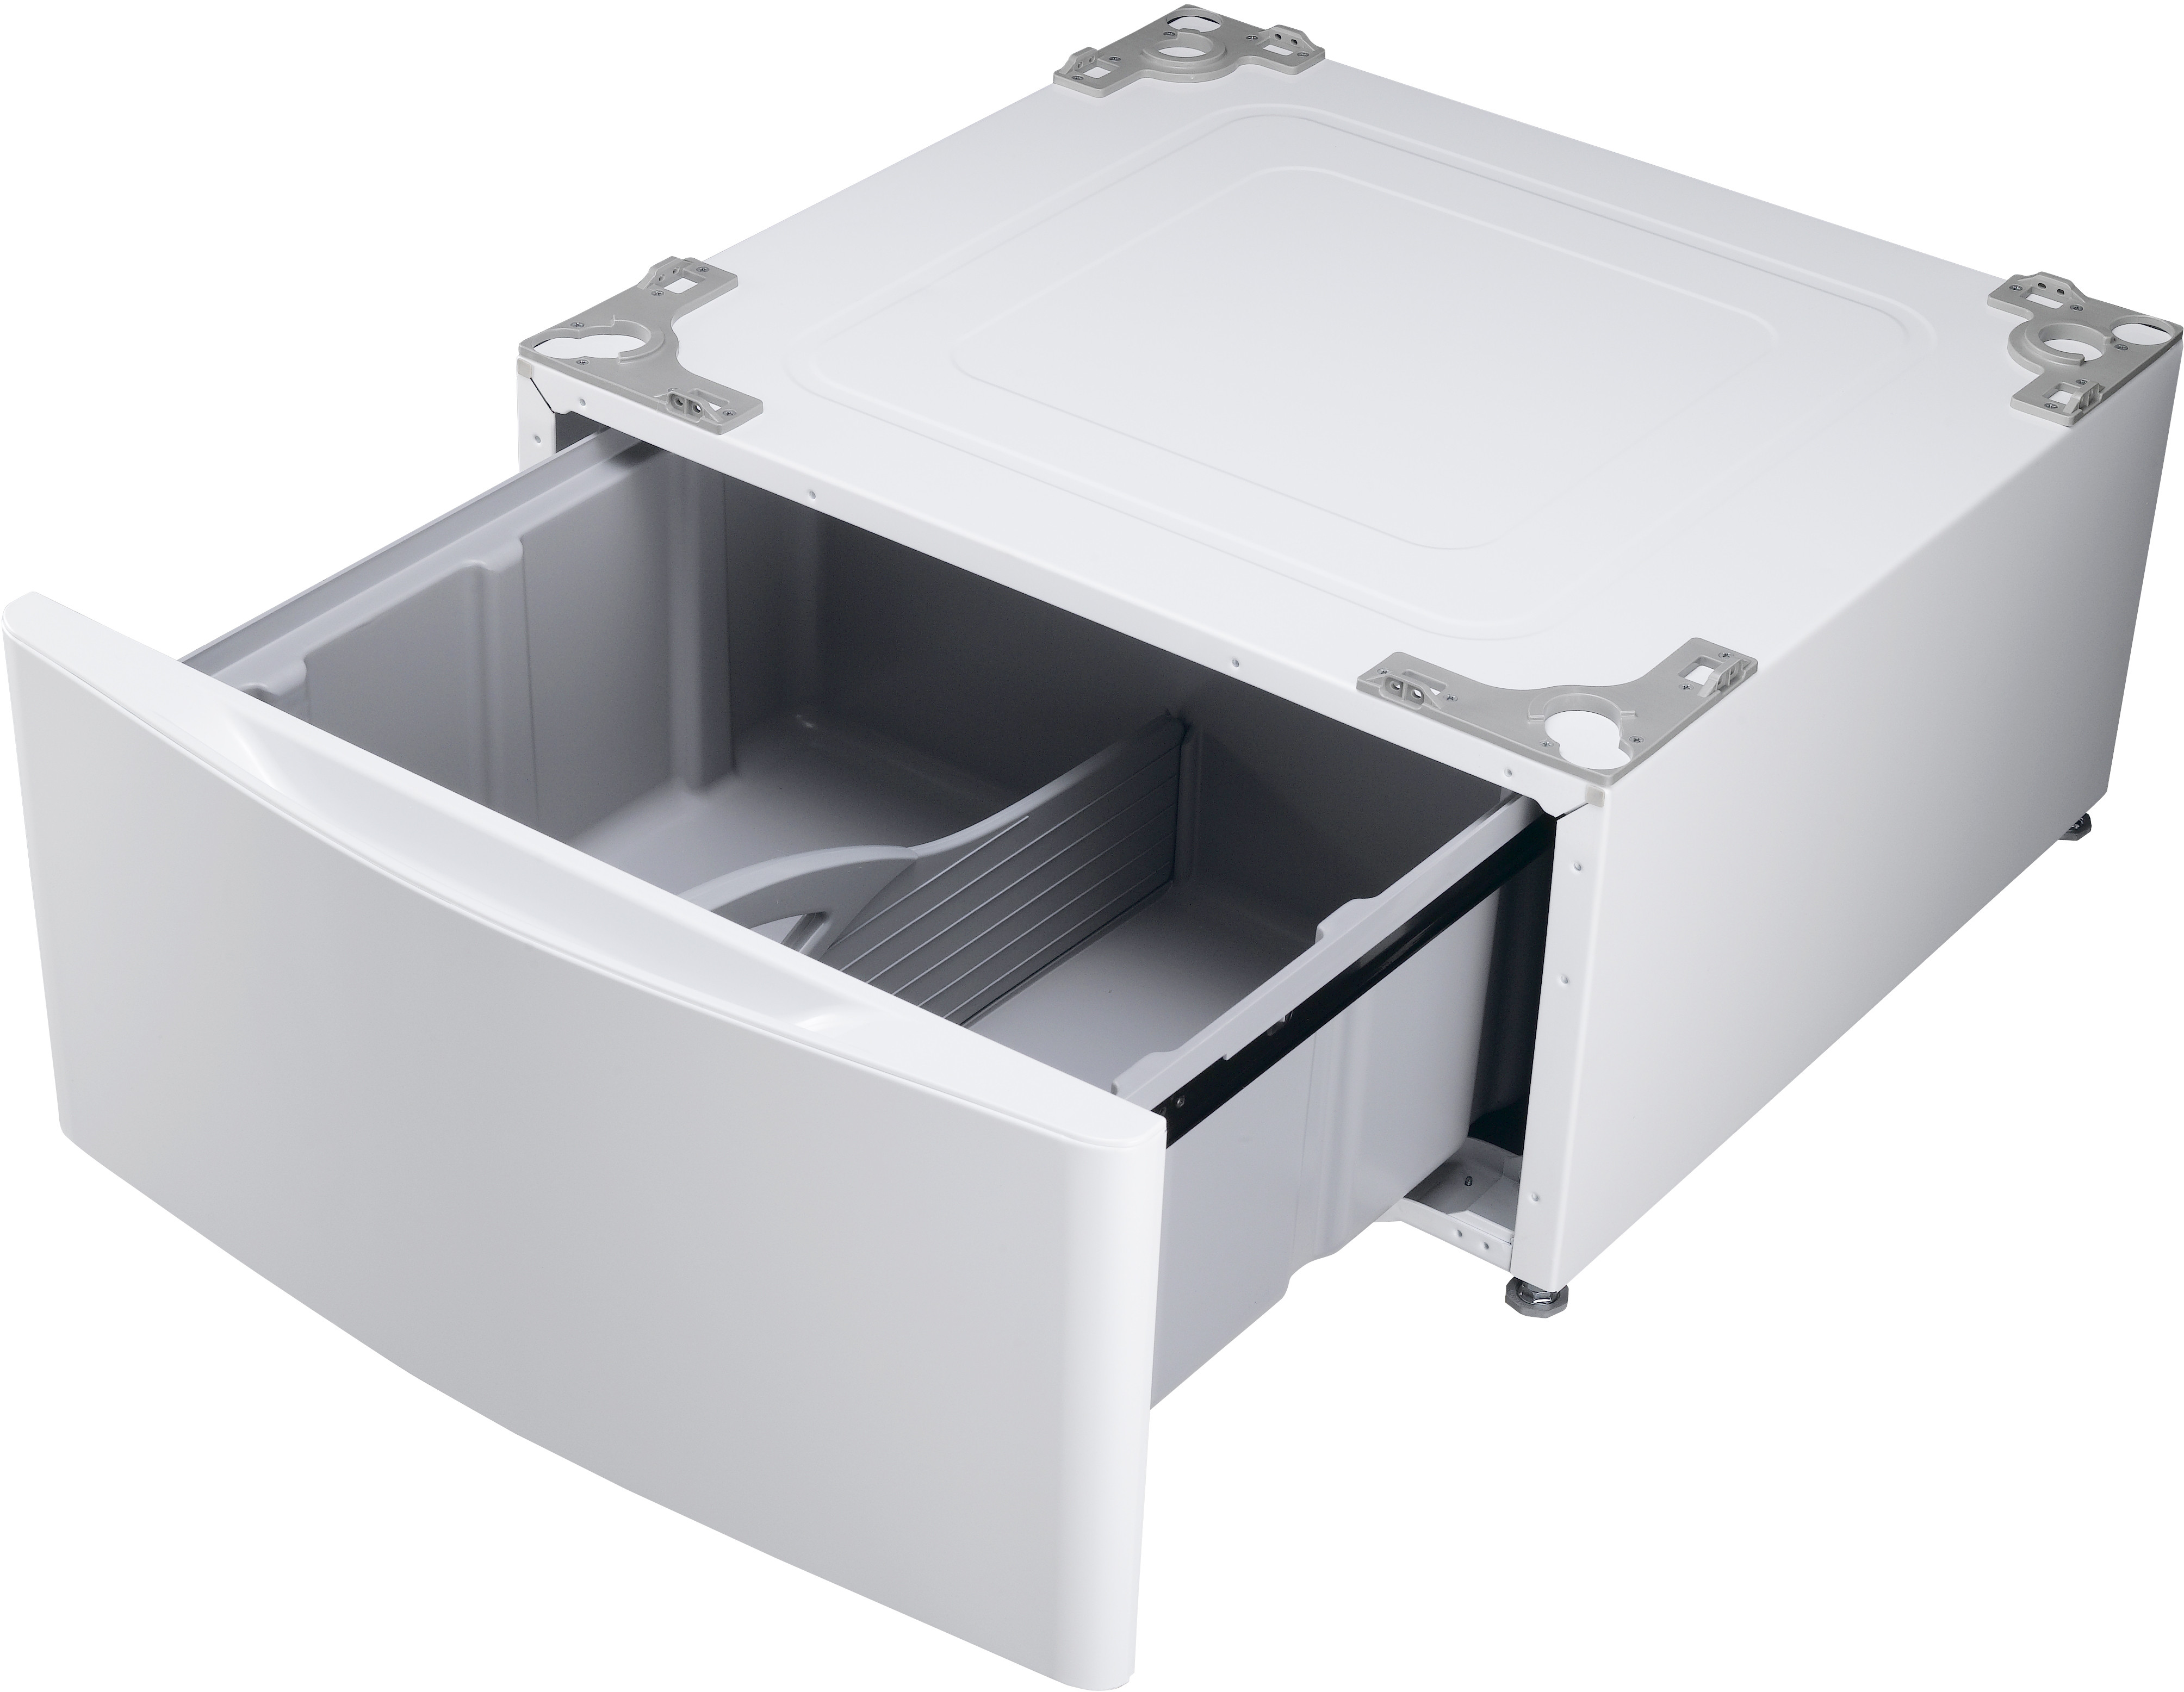 ratings load bid pedestal washers electrolux vs prices front reviews samsung